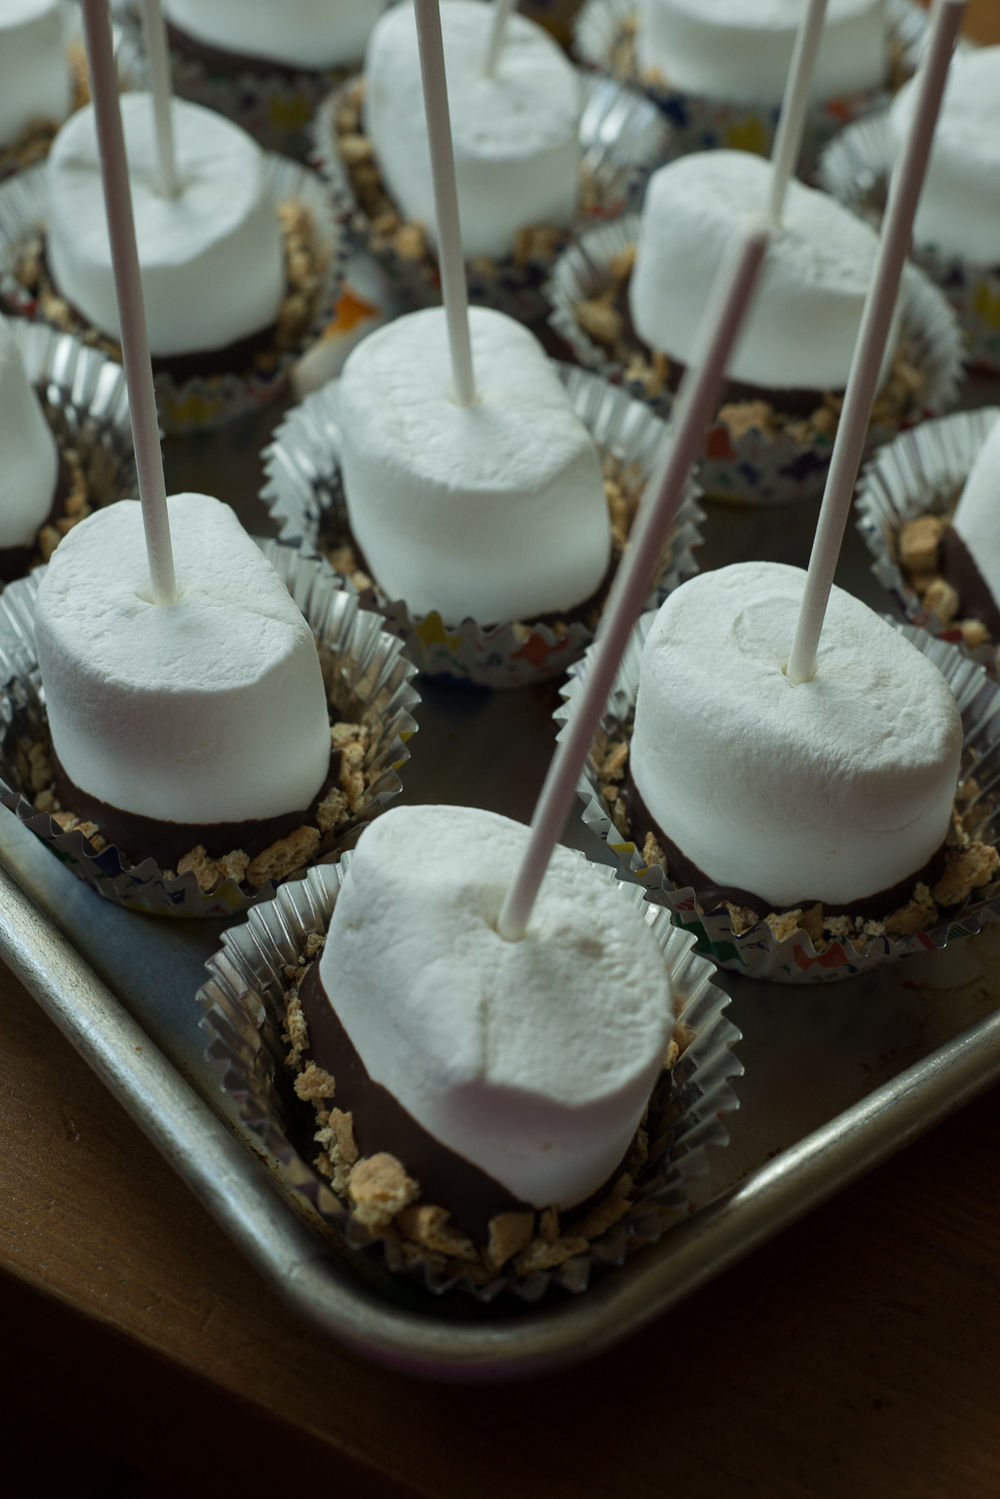 smore-treats-in-pan.jpg